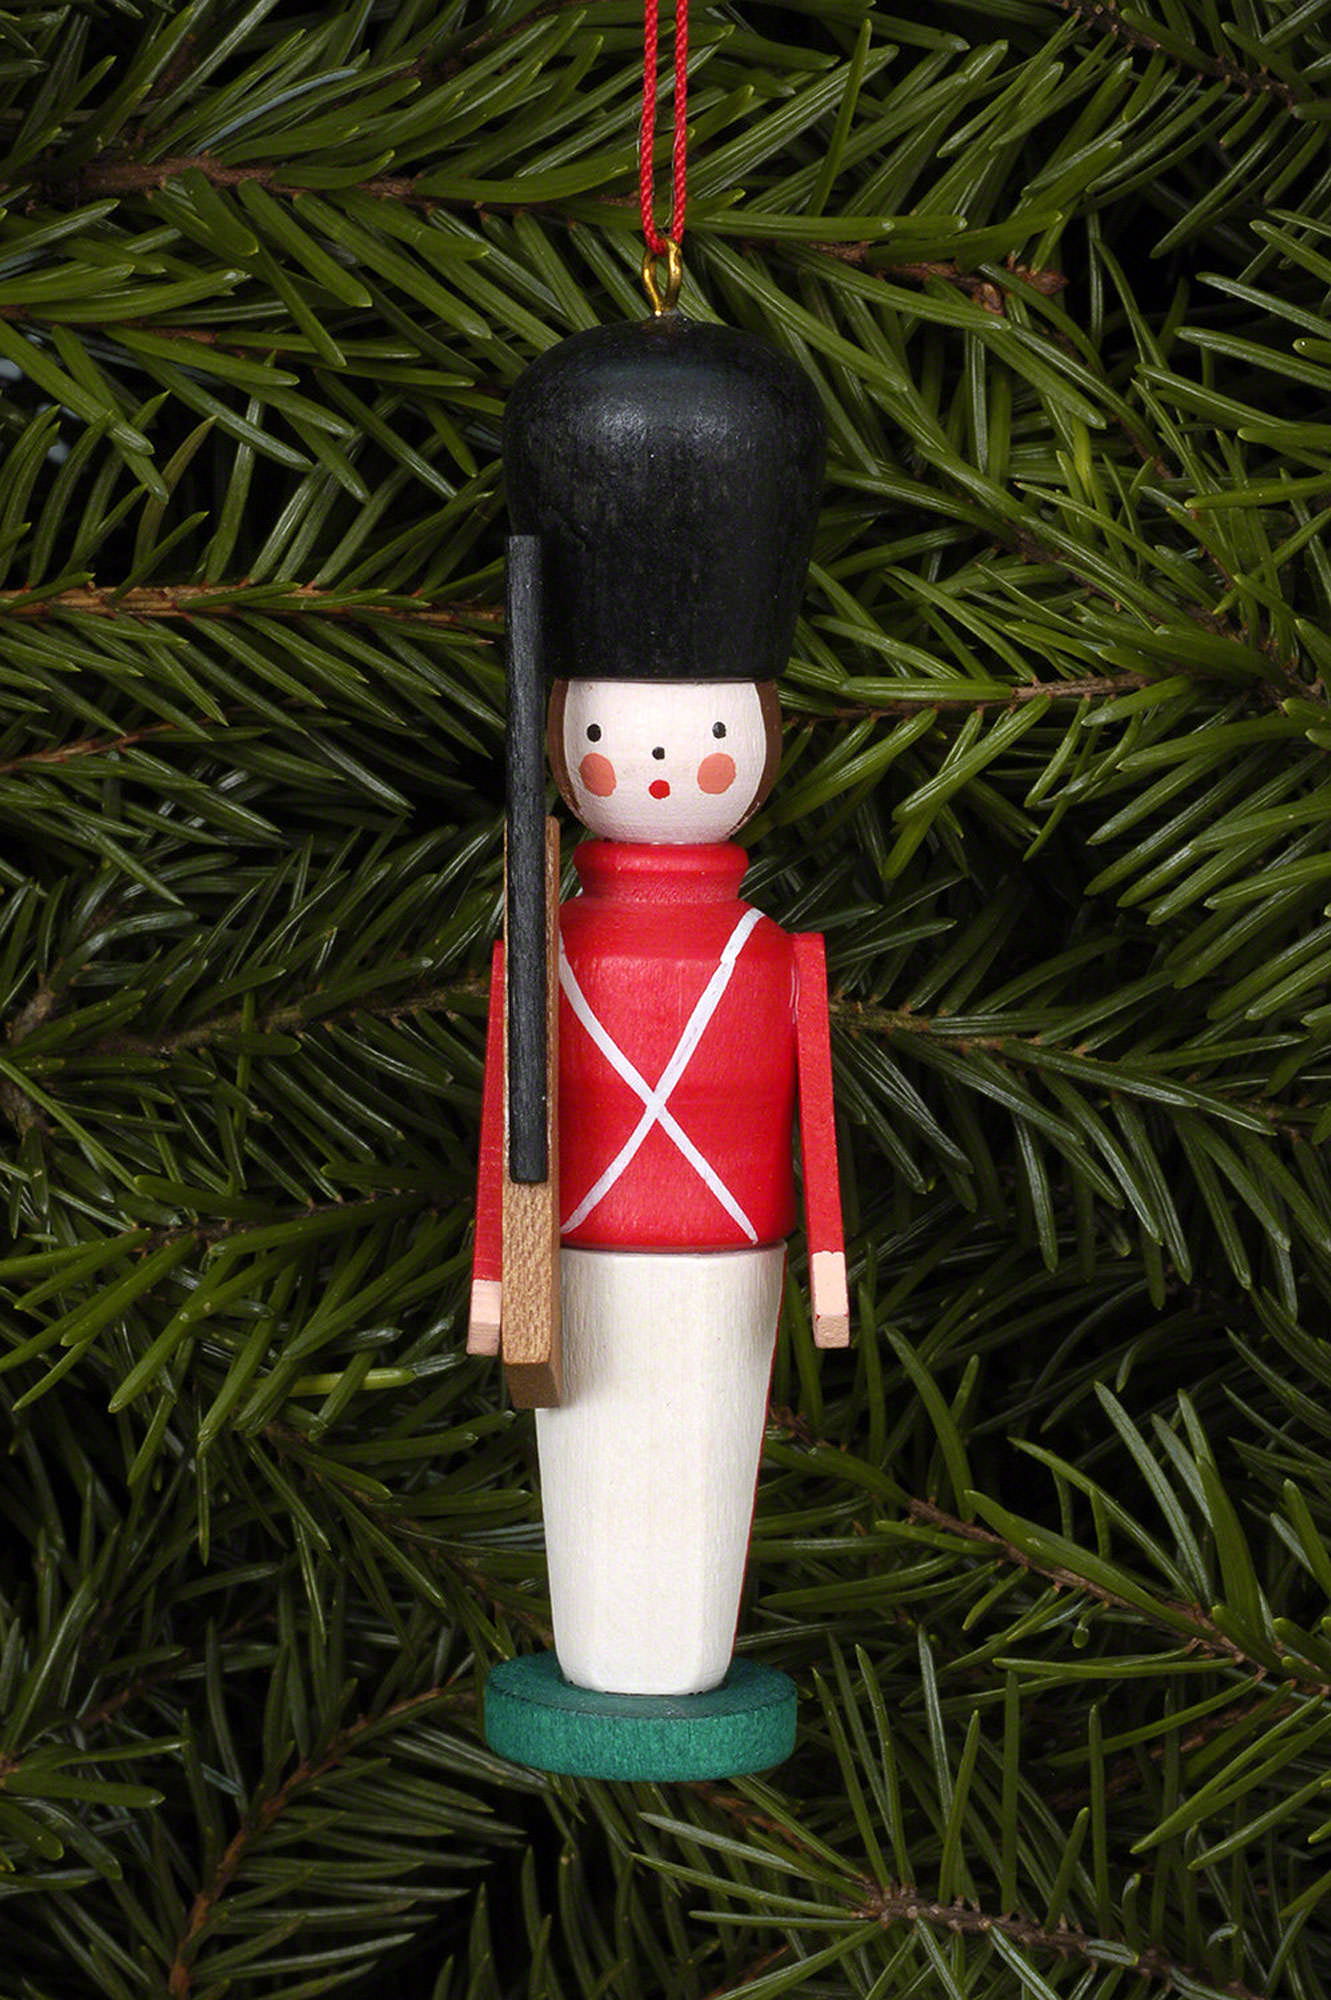 tree ornament toy soldier 2485 cm13in by christian ulbricht - Christmas Soldier Decorations